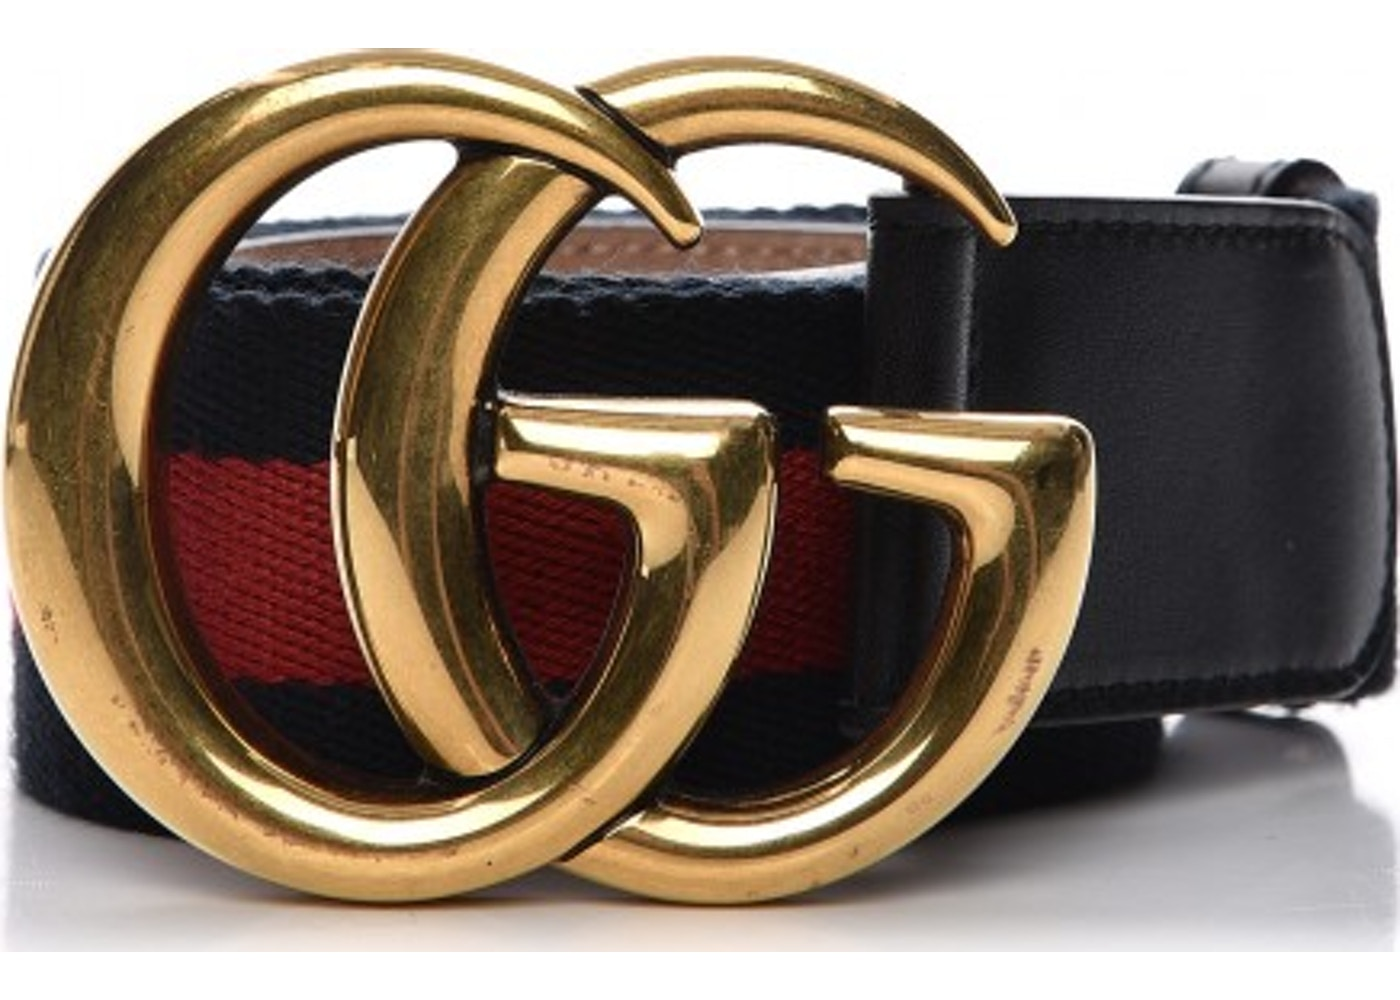 8e5ebf6c13fb Gucci Mens Double G Belt 100 Web 40 Black Blue Red. Web 40 Black Blue Red